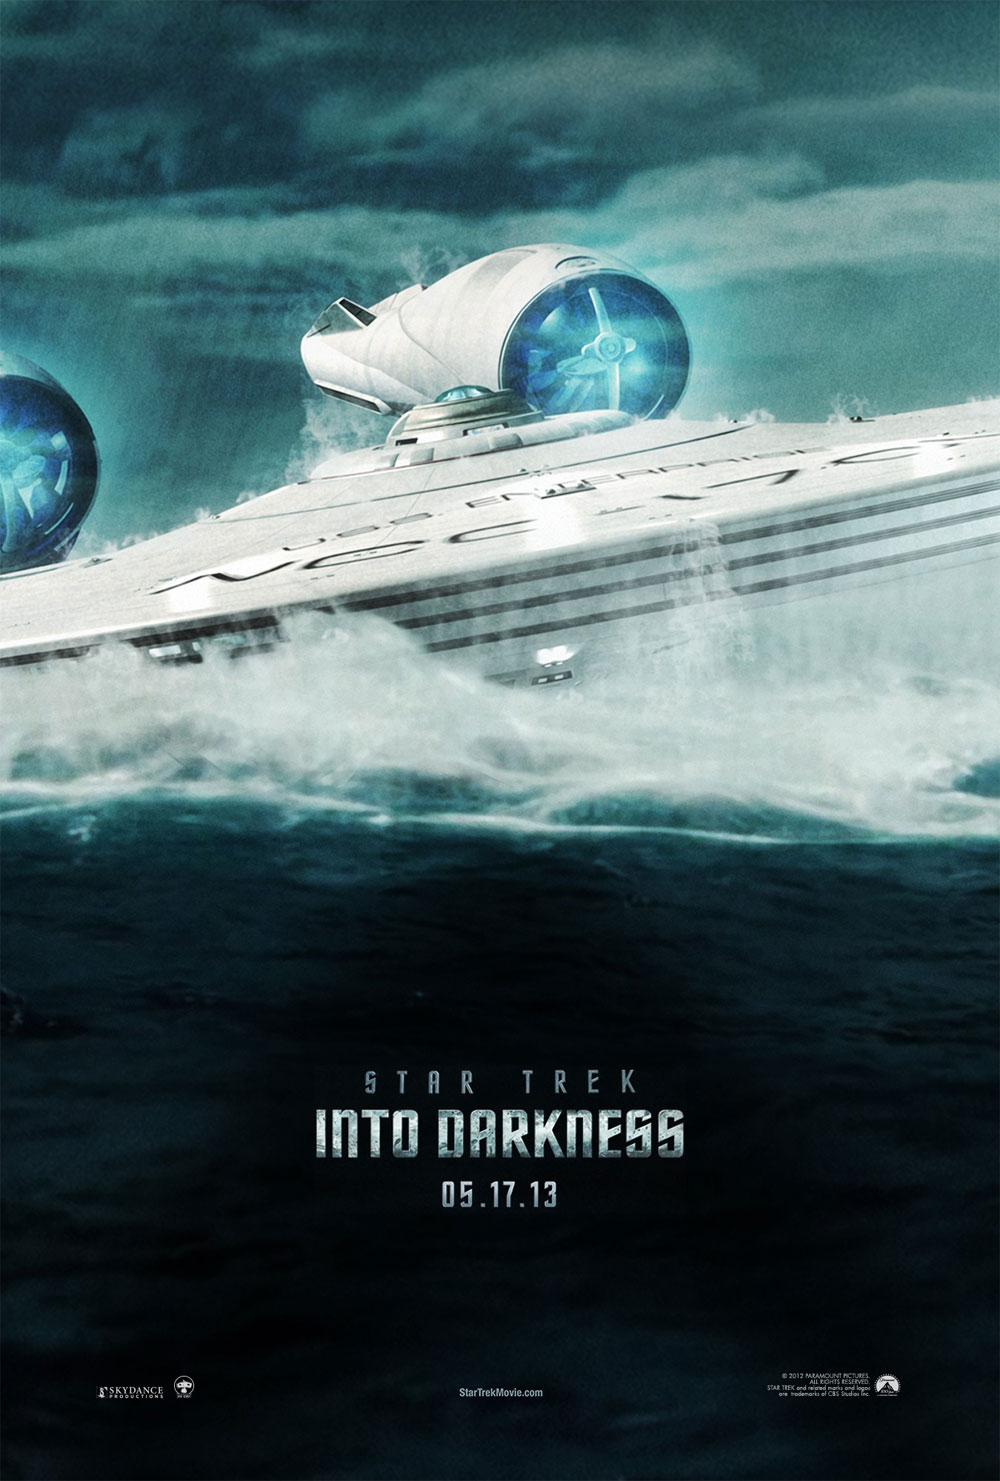 Over The Weekend An Action Packed New Trailer For Star Trek Into Darkness Was Released If You Havent Seen It Yet Click Here And Watch Now Because Its